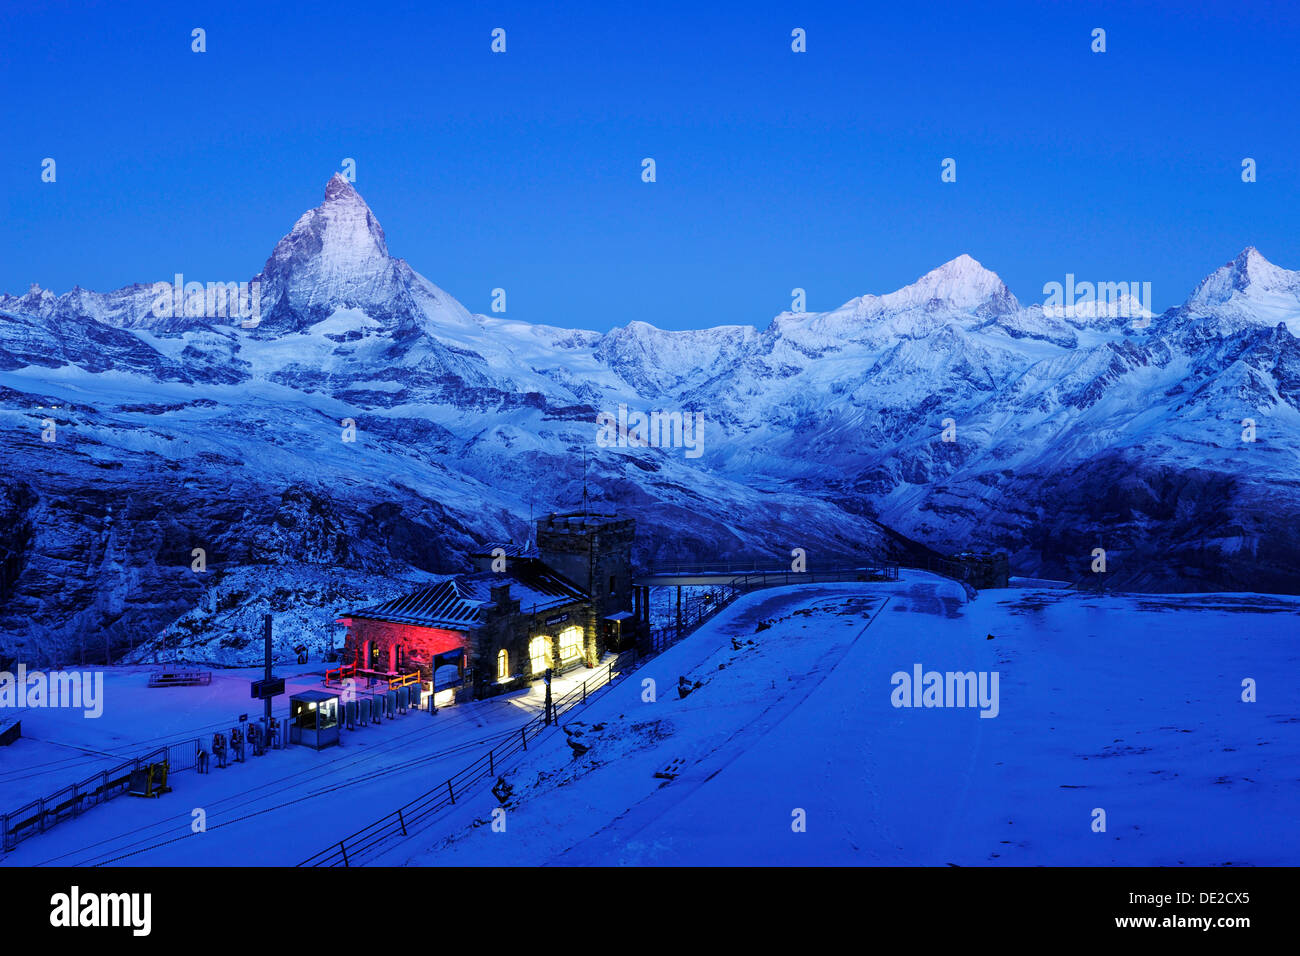 Gornergrad Mountain Station with the Matterhorn, Zermatt, Valais, Switzerland, Europe - Stock Image